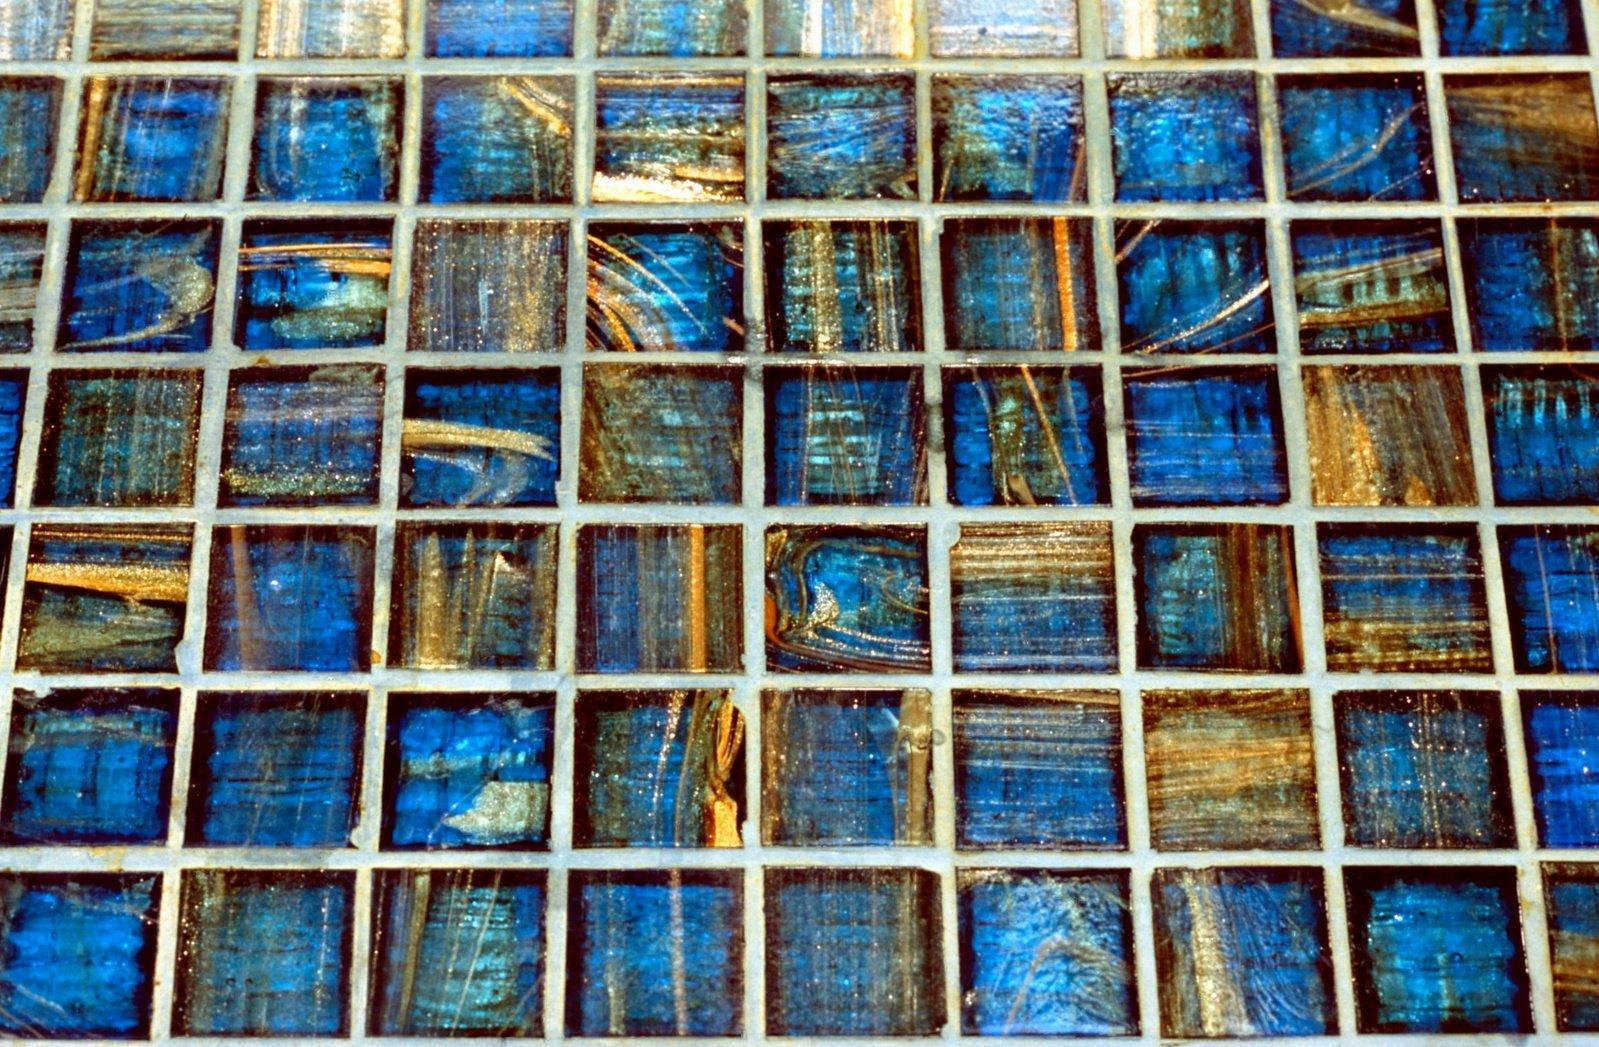 bg-0002 100 glass mosaic tiles murals for your bathroom, kitchen or swimming pool